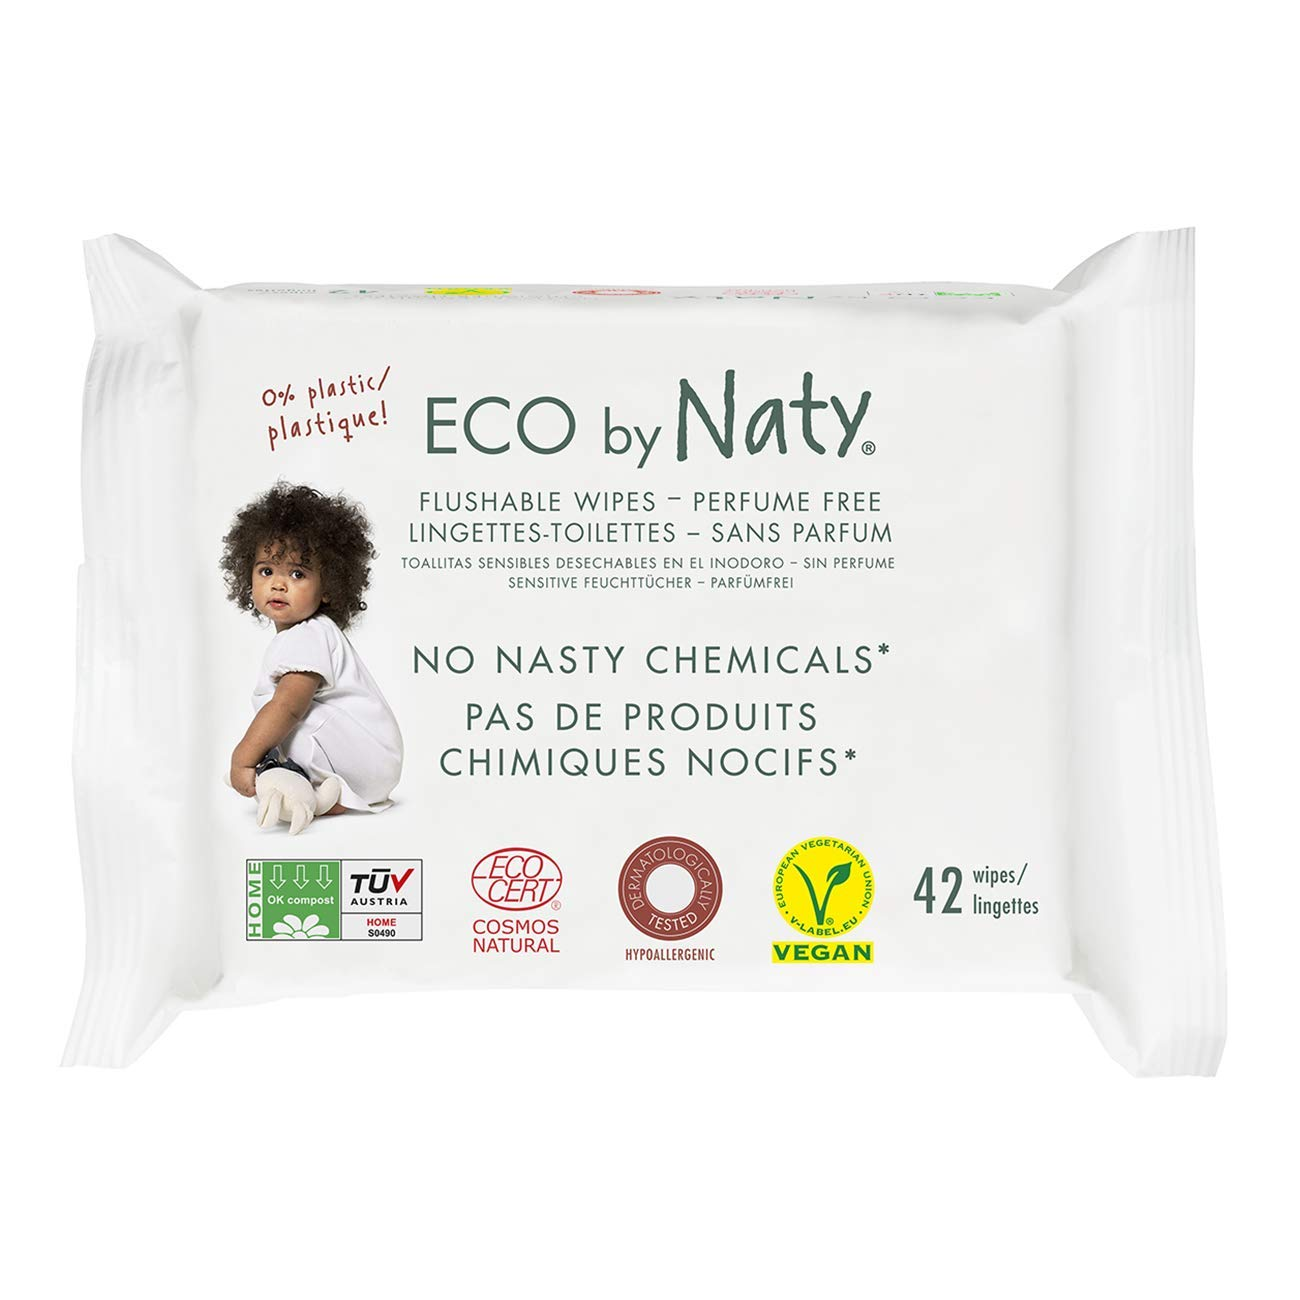 Eco by Naty Thick Flushable Baby Wipes for Sensitive Skin, Unscented, Hypoallergenic, Biodegradable and Compostable, 12 Packs of 42 (504 Count) by Eco by Naty